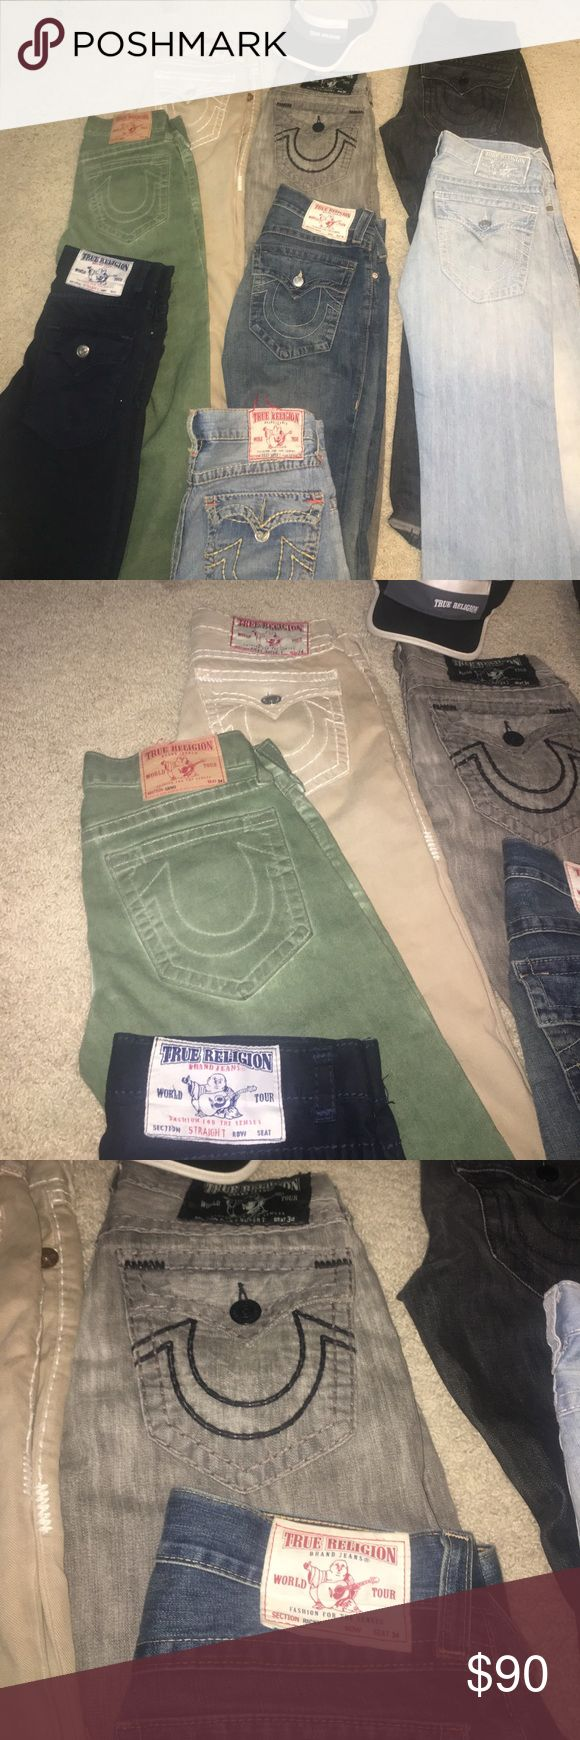 True Religion Jeans Men If you buy them all at once I will cut you a deal for 60$ a pair Instead of 80$ True Religion Jeans Straight